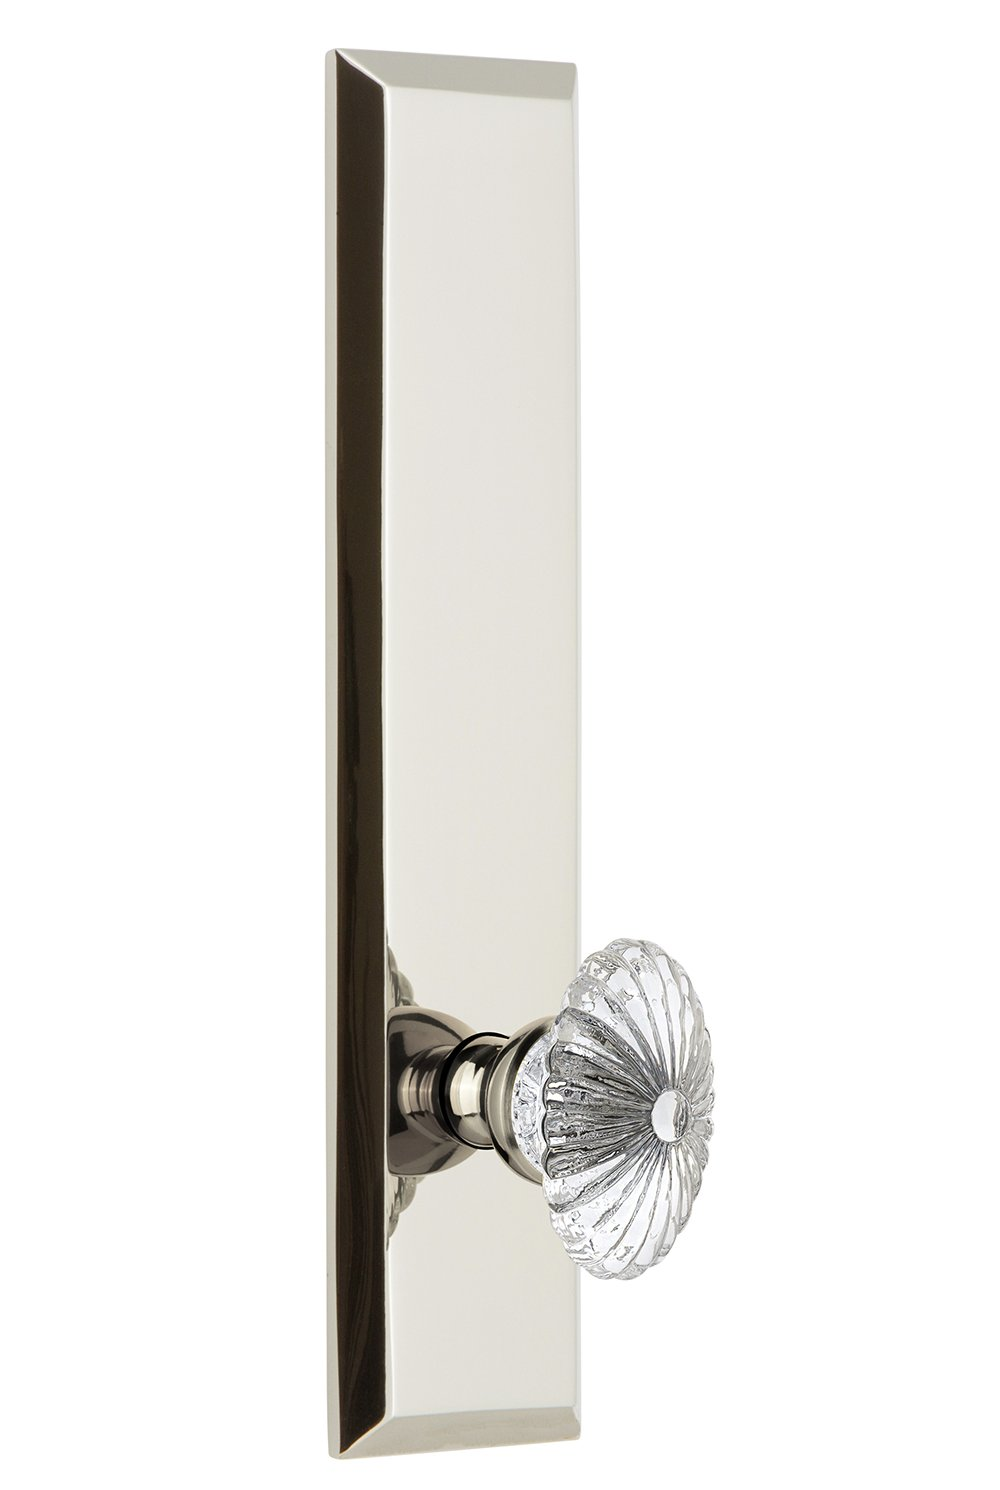 Single Grandeur 803040 Hardware Fifth Avenue Tall Plate Dummy with Burgundy Knob in Polished Nickel